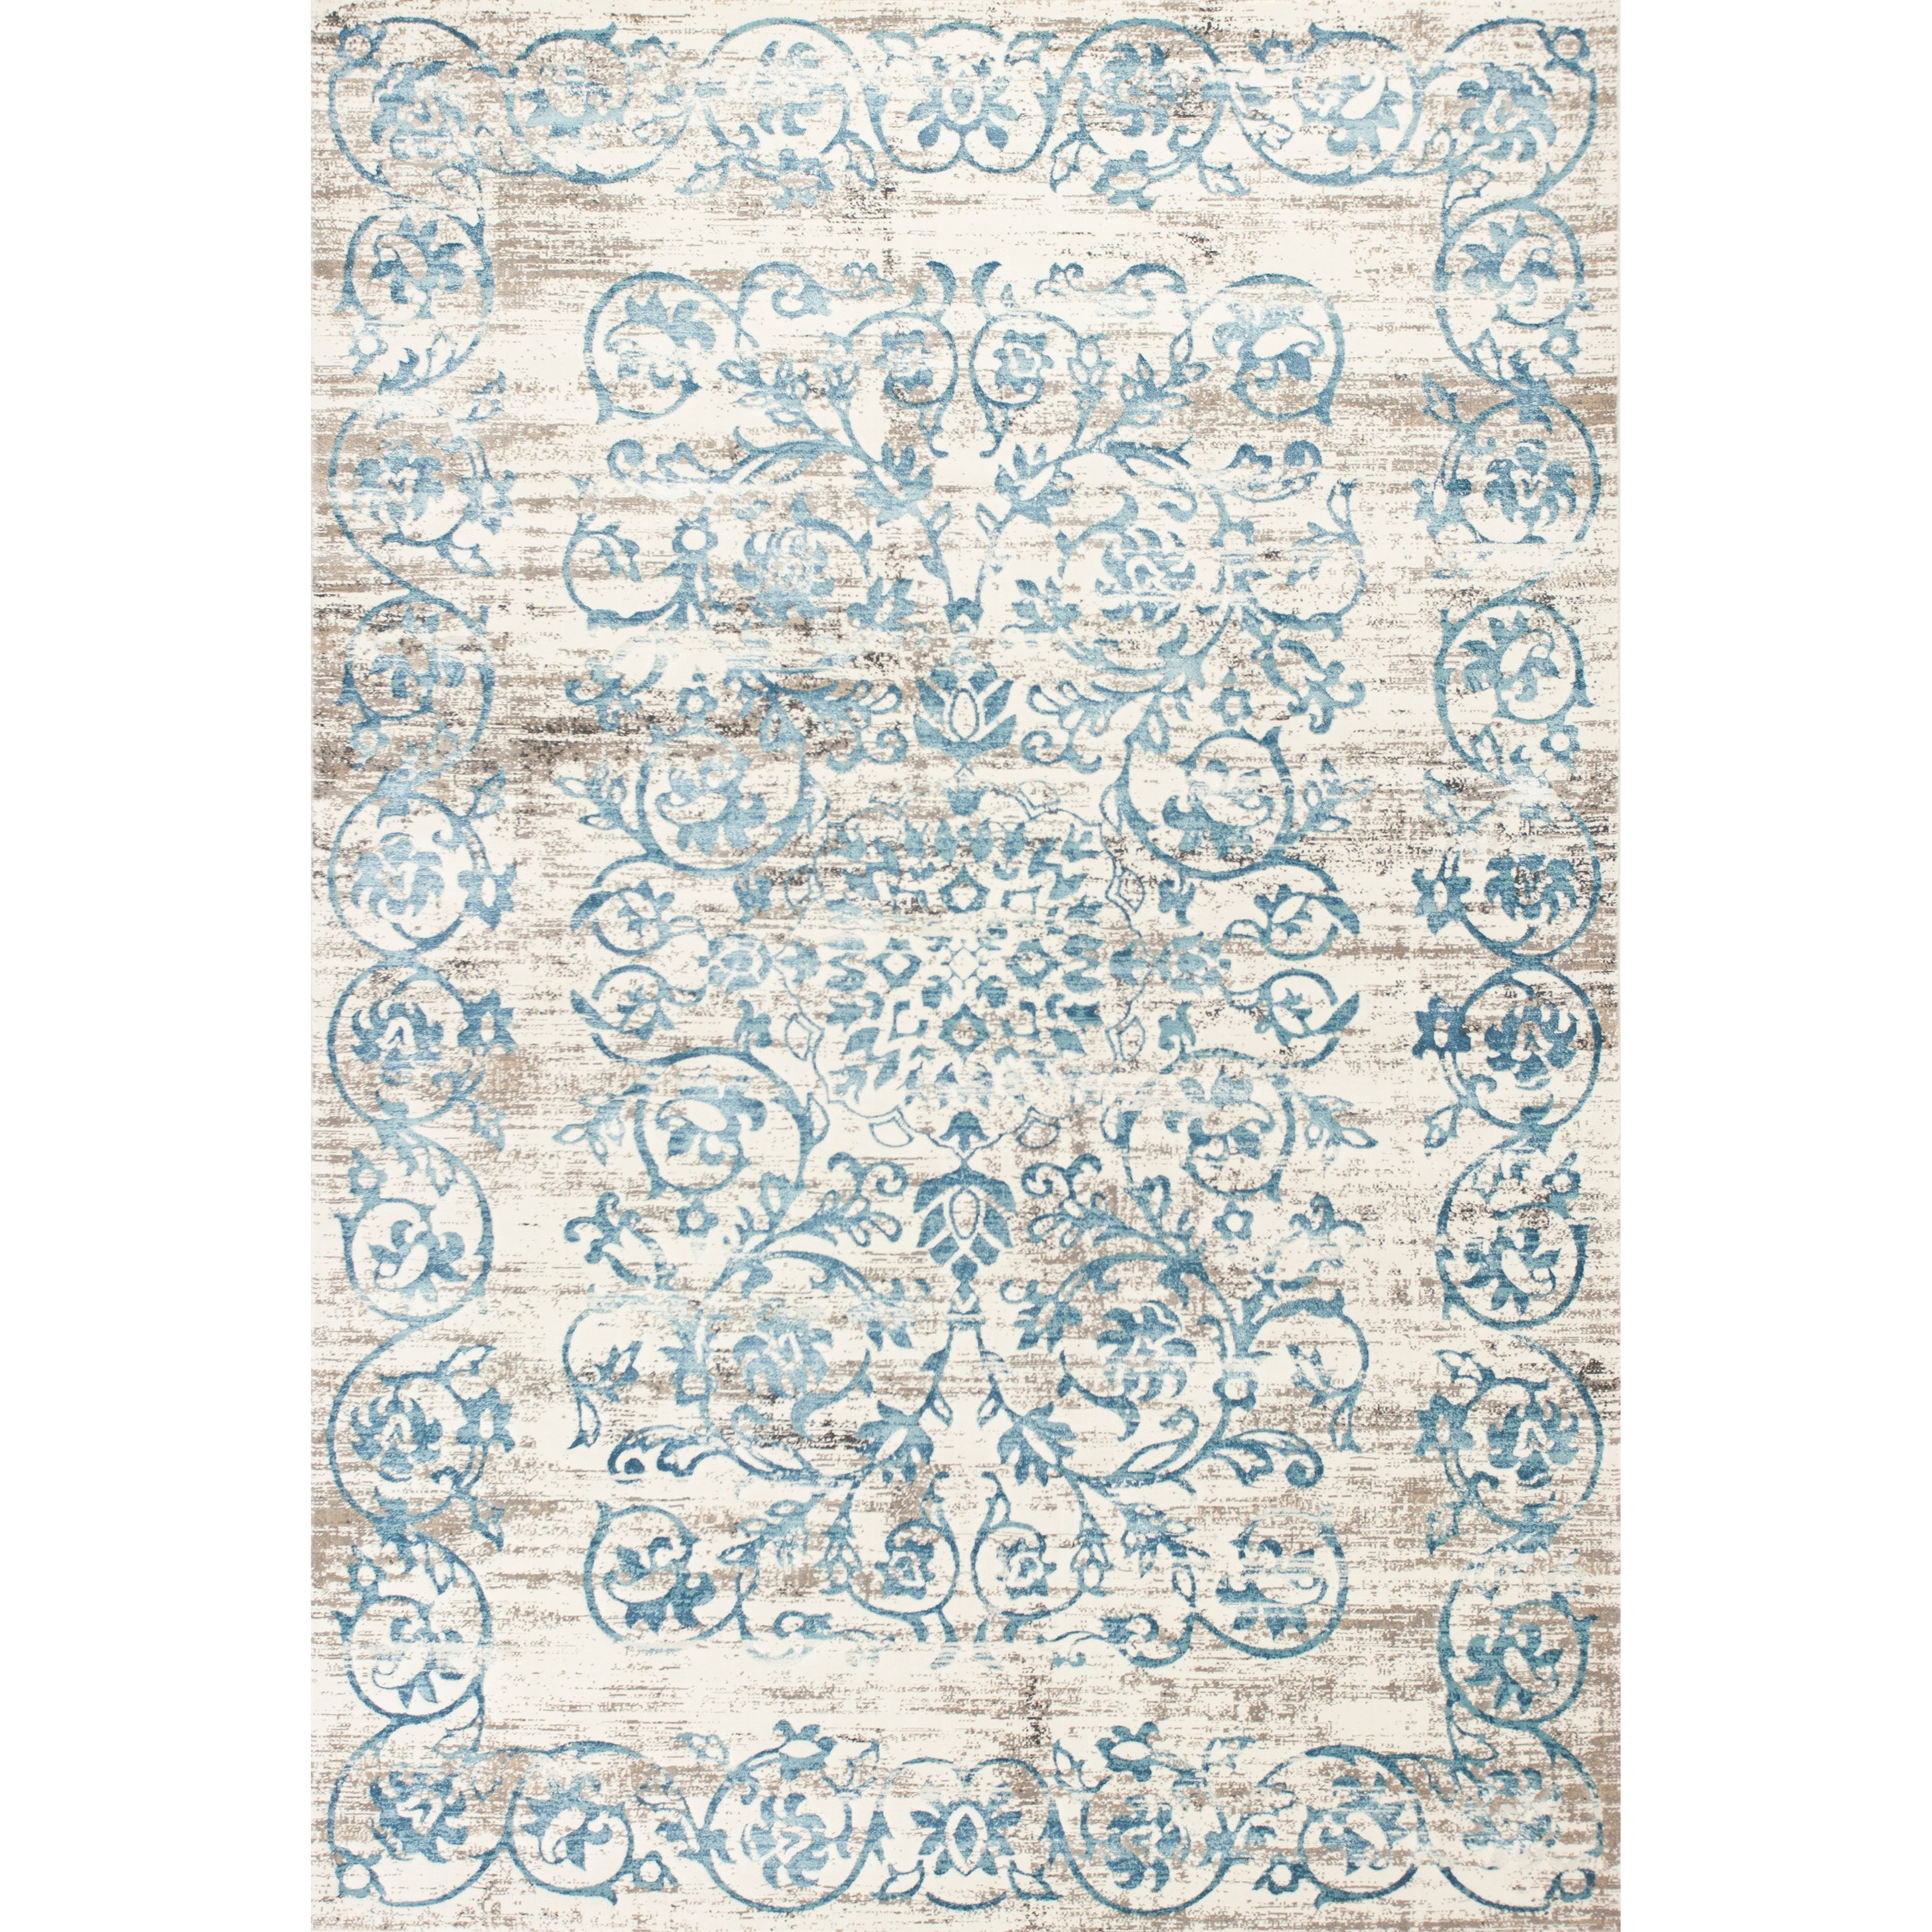 """Crete 3'3"""" X 4'7"""" Ivory/Blue Courtyard Area Rug by Kas at Zak's Home"""